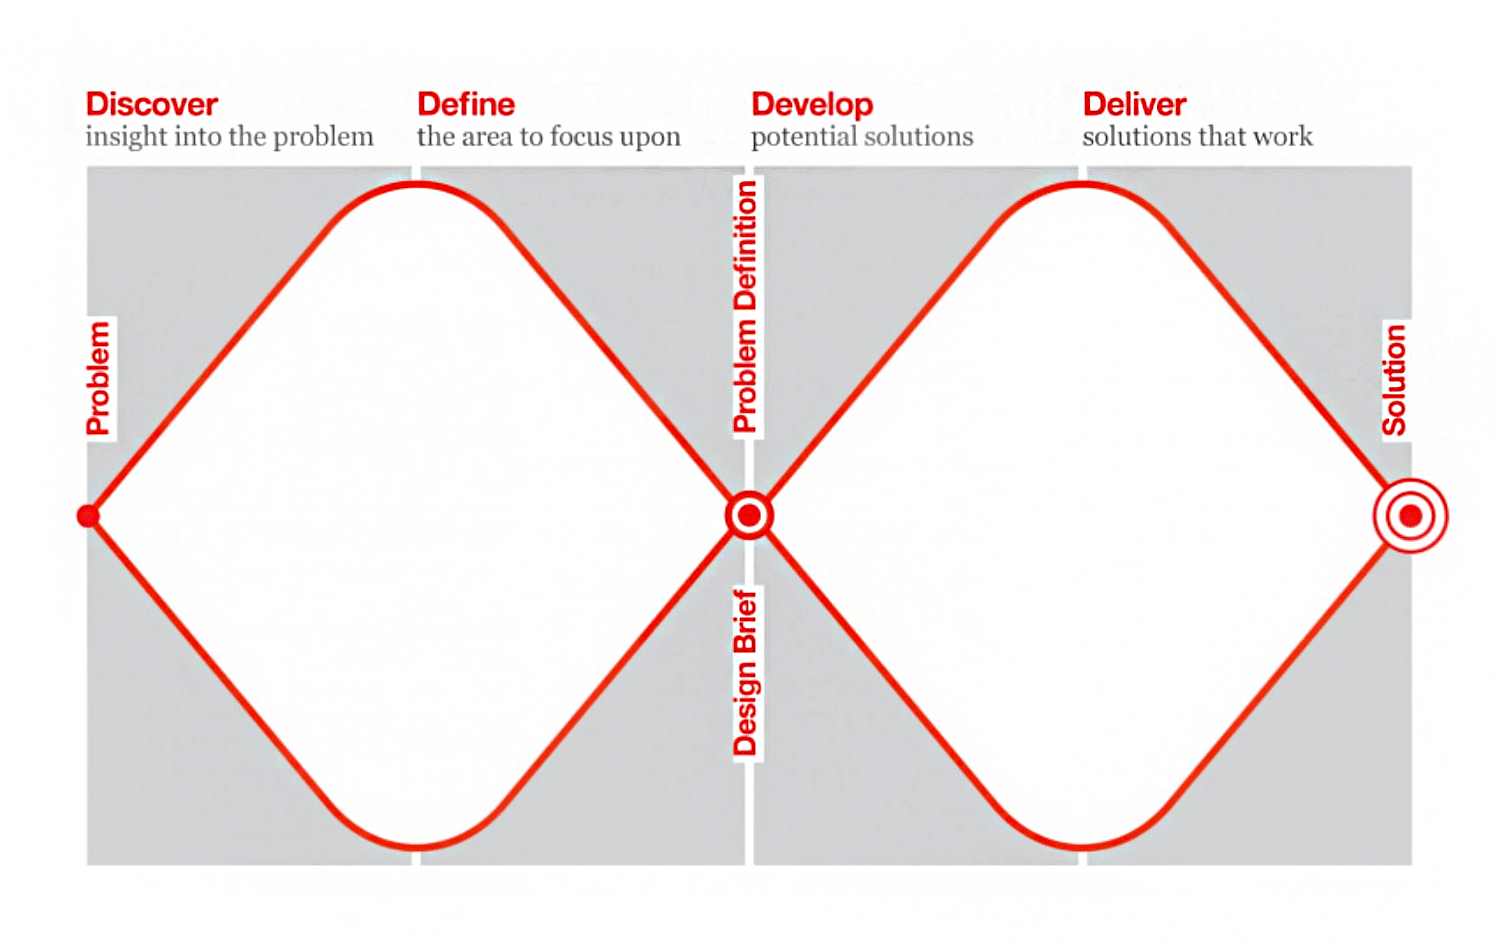 The double diamond model - components and stages